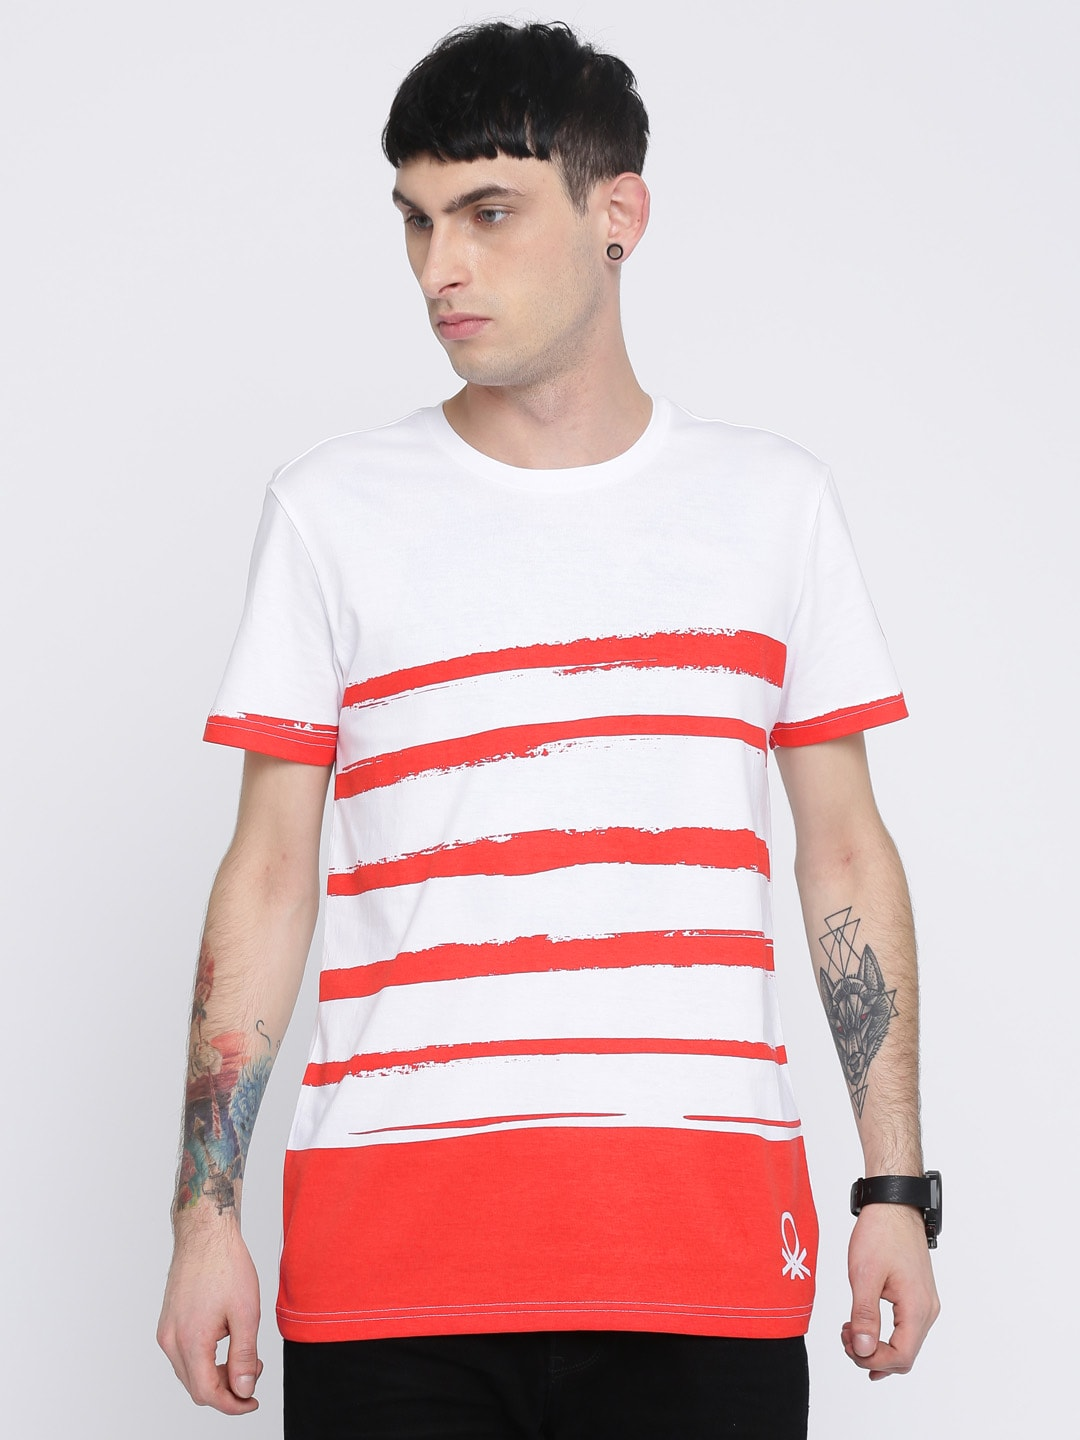 United Colors of Benetton Men White & Red Striped T-shirt image